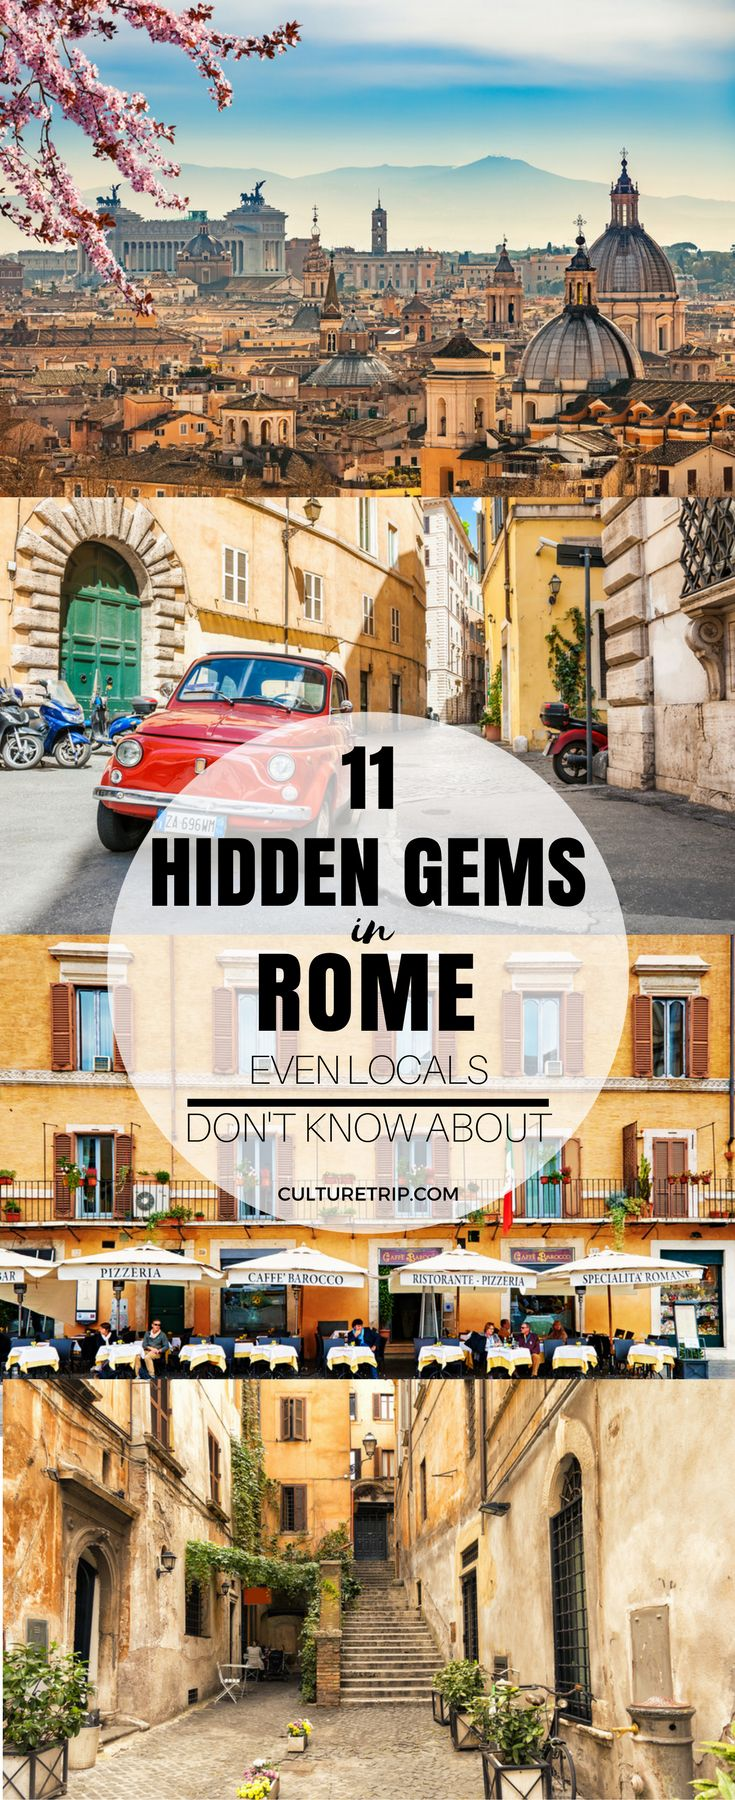 11 Hidden Gems in Rome Even the Locals Don't Know About Pinterest: @theculturetrip